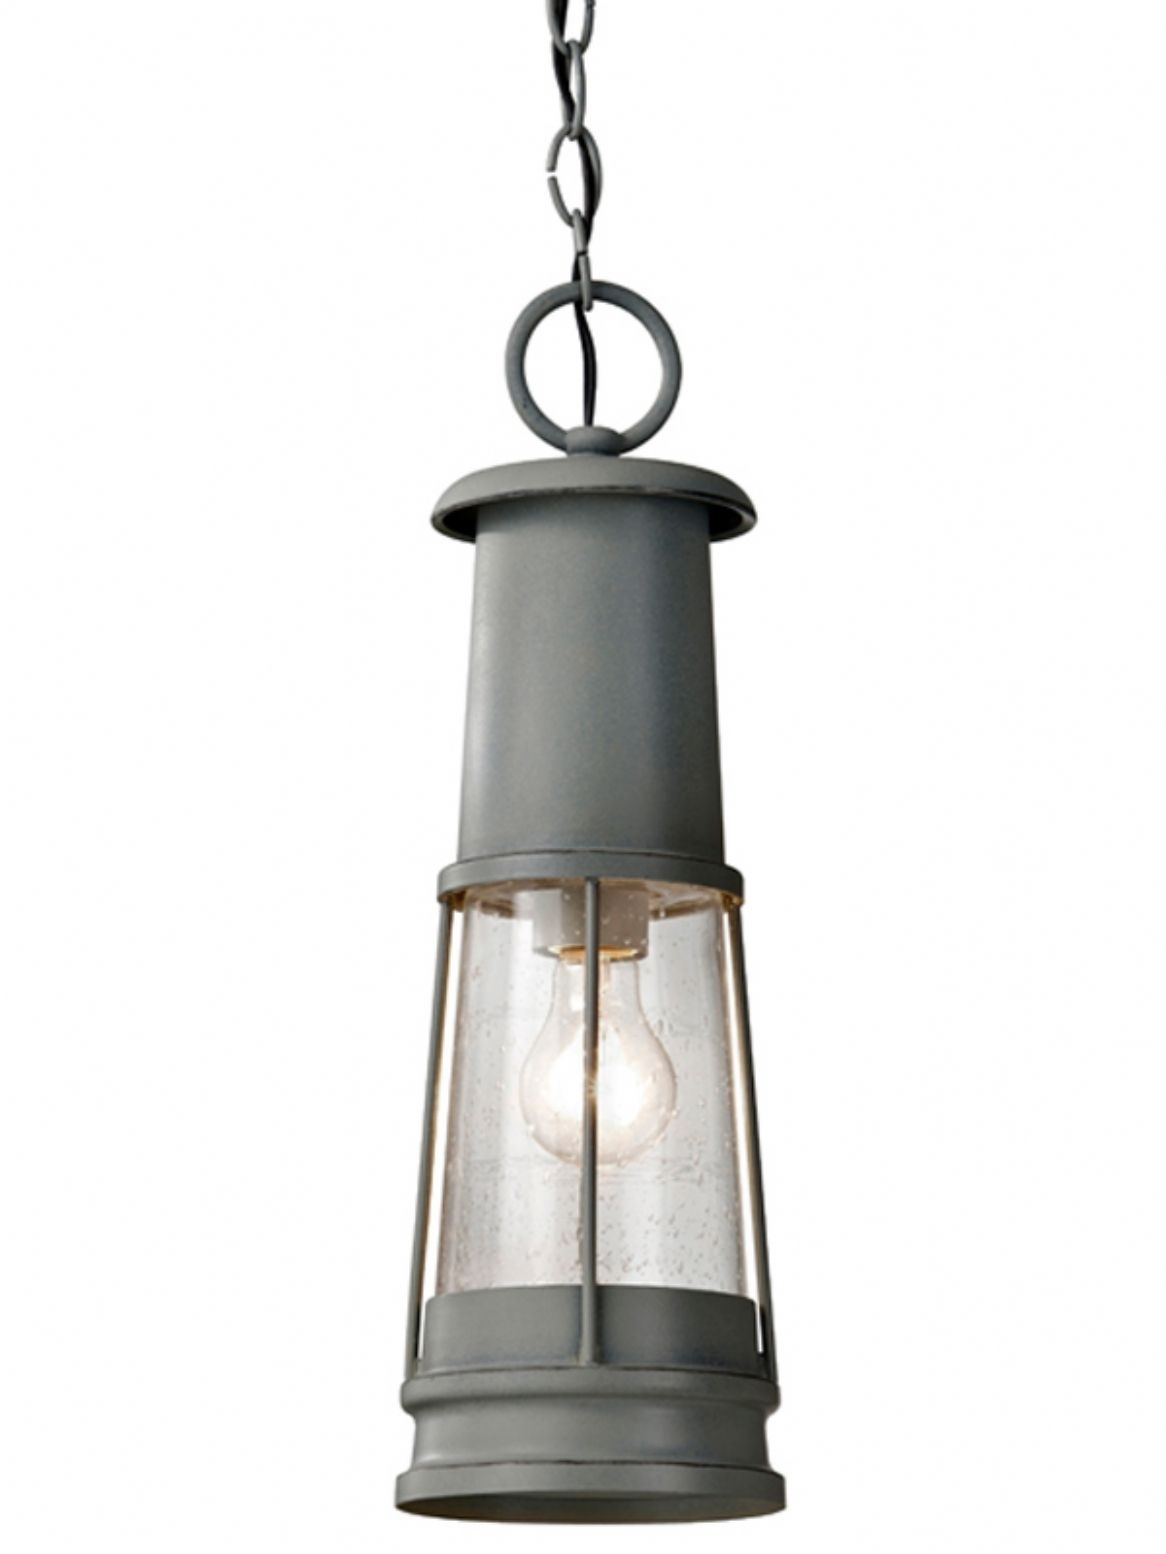 Industrial Hanging Lantern Pendant | Km Lighting | Pinterest for Industrial Outdoor Lanterns (Image 6 of 20)